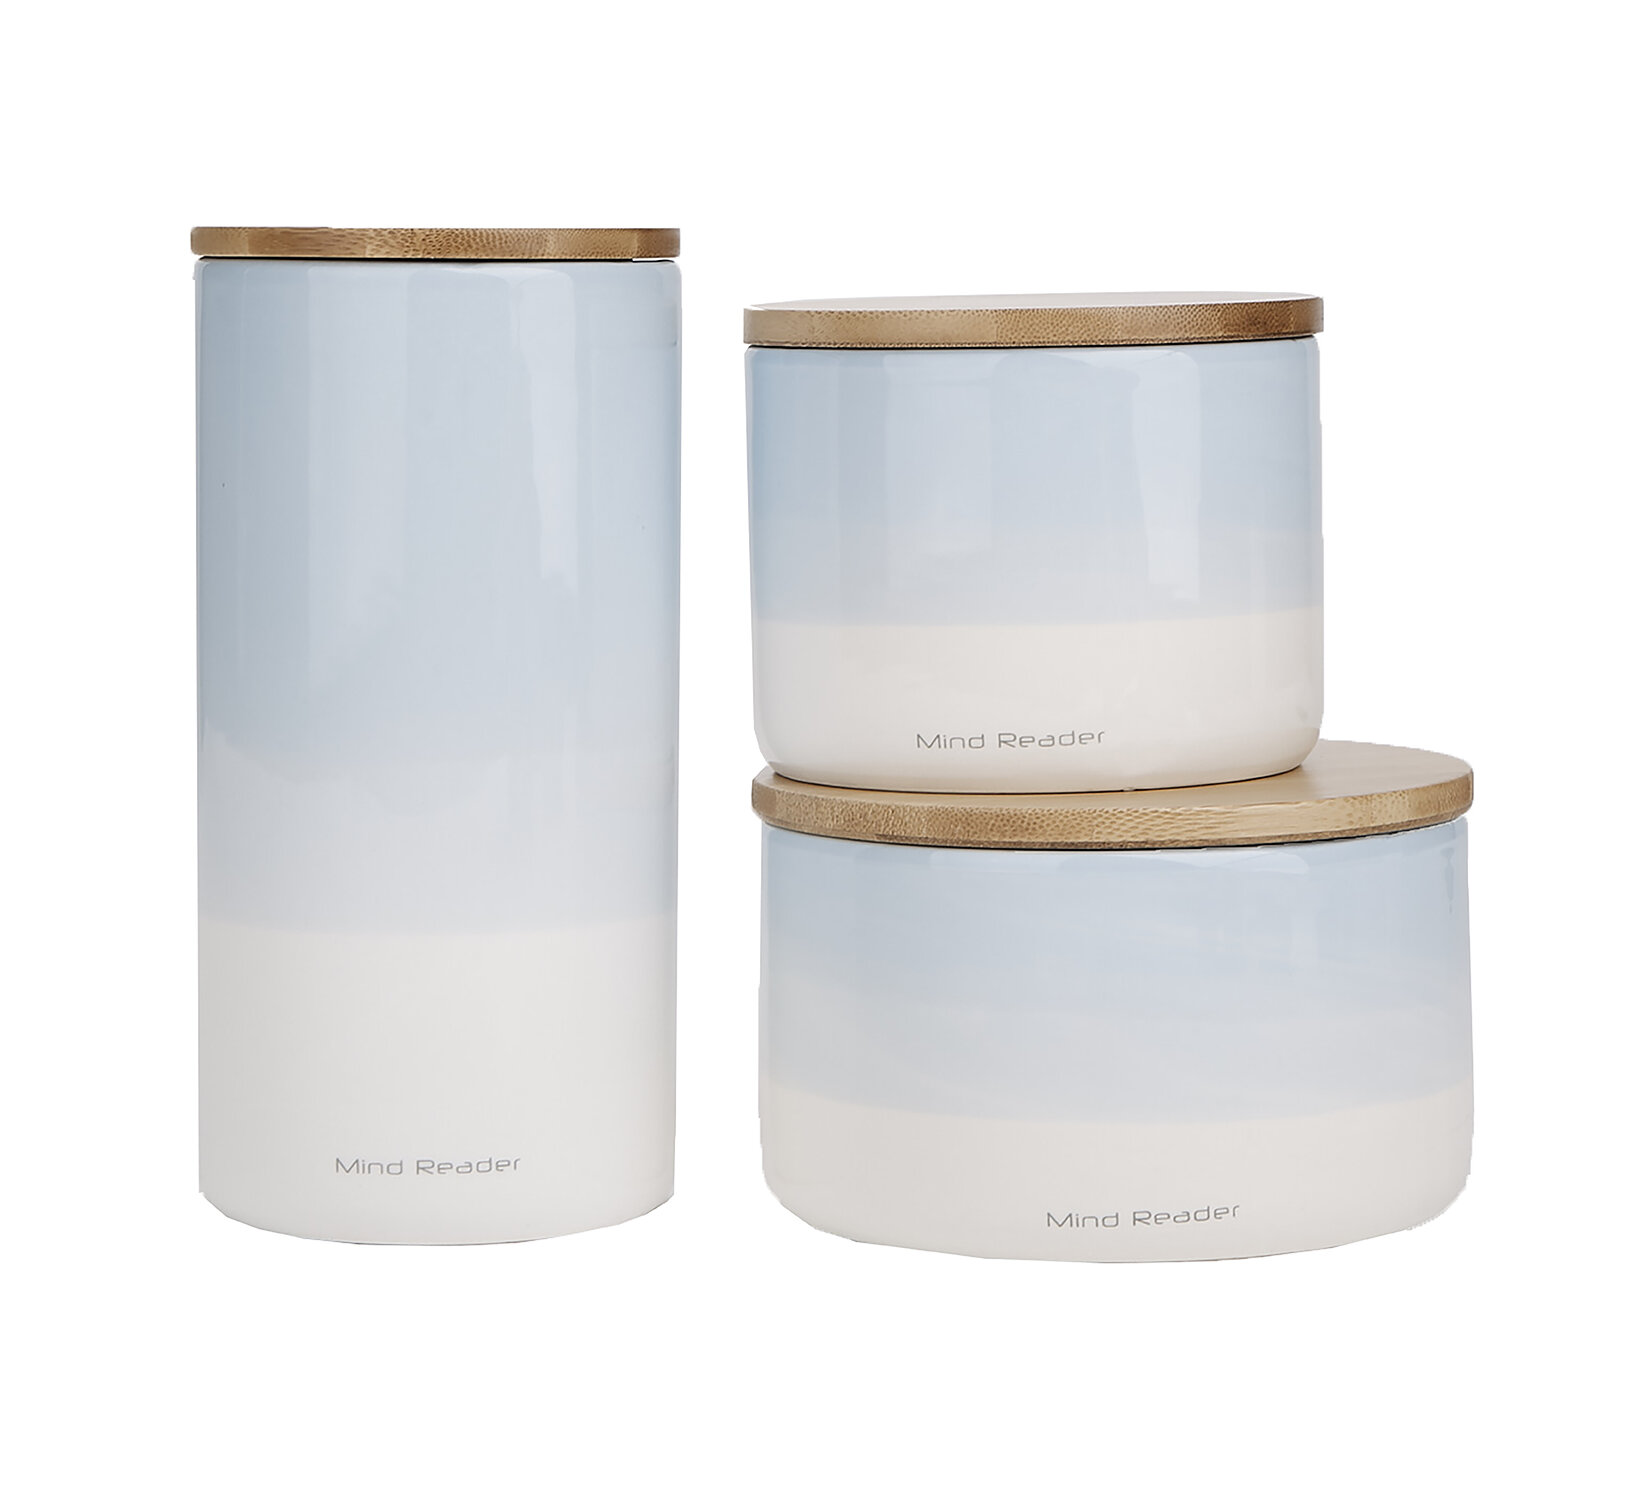 Mind Reader Small Medium Large Ceramic Canister 3 Pc Set With Lids Round Sets Food Storage Jar Container Blue Wayfair